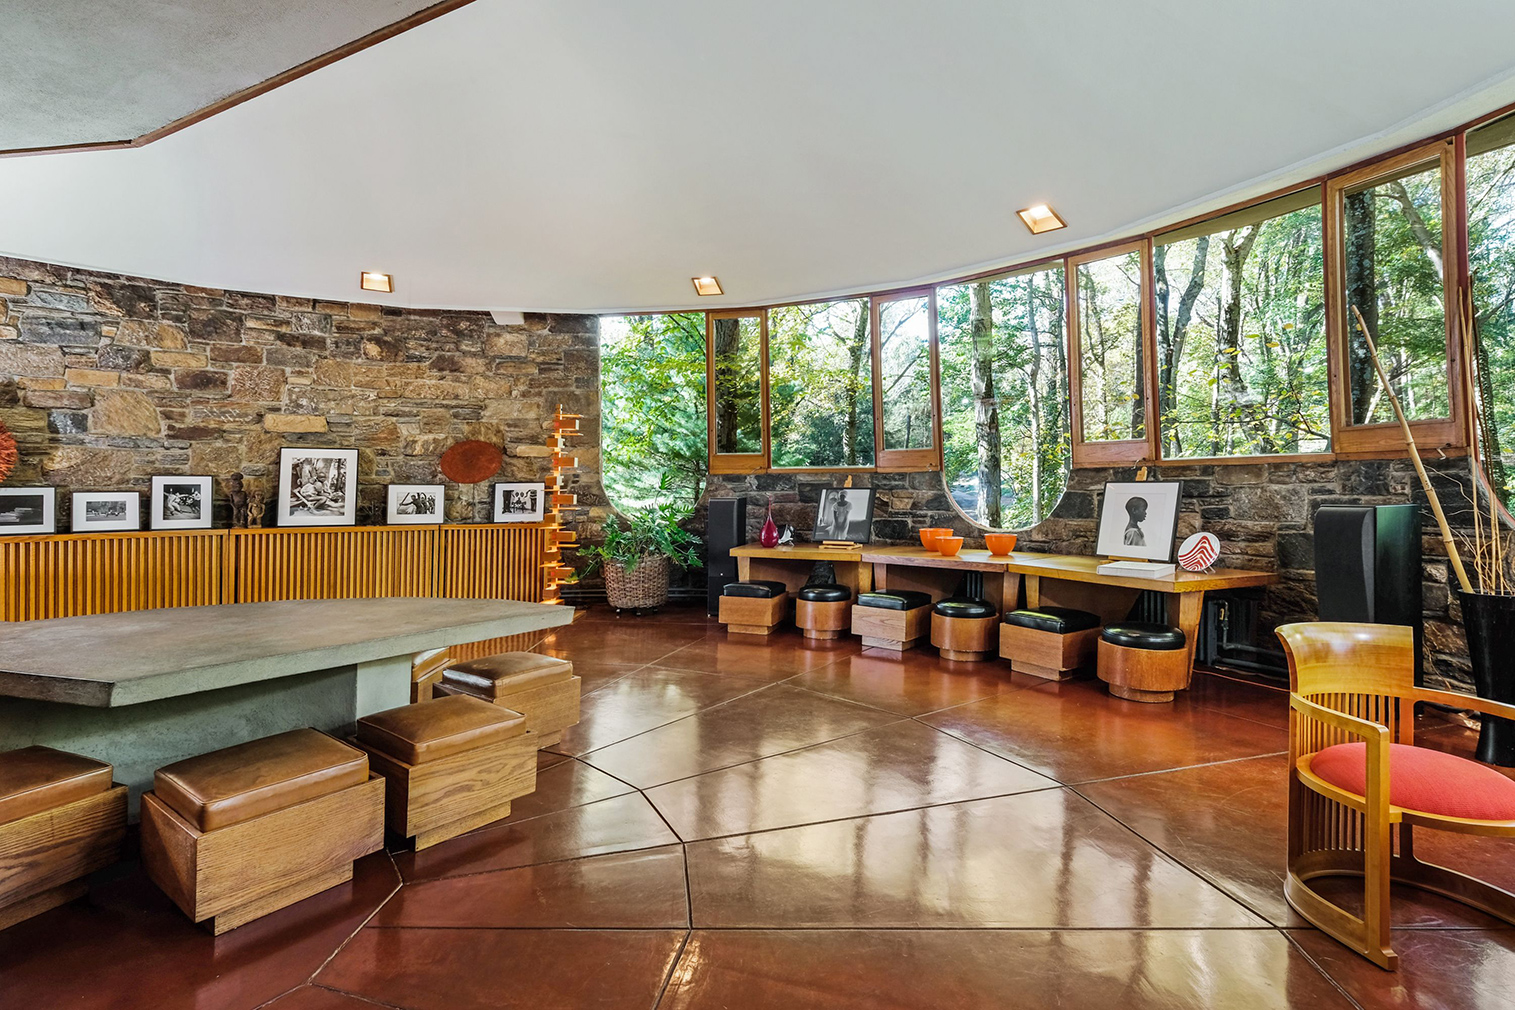 Frank Lloyd Wright's mushroom-like Sol Friedman House